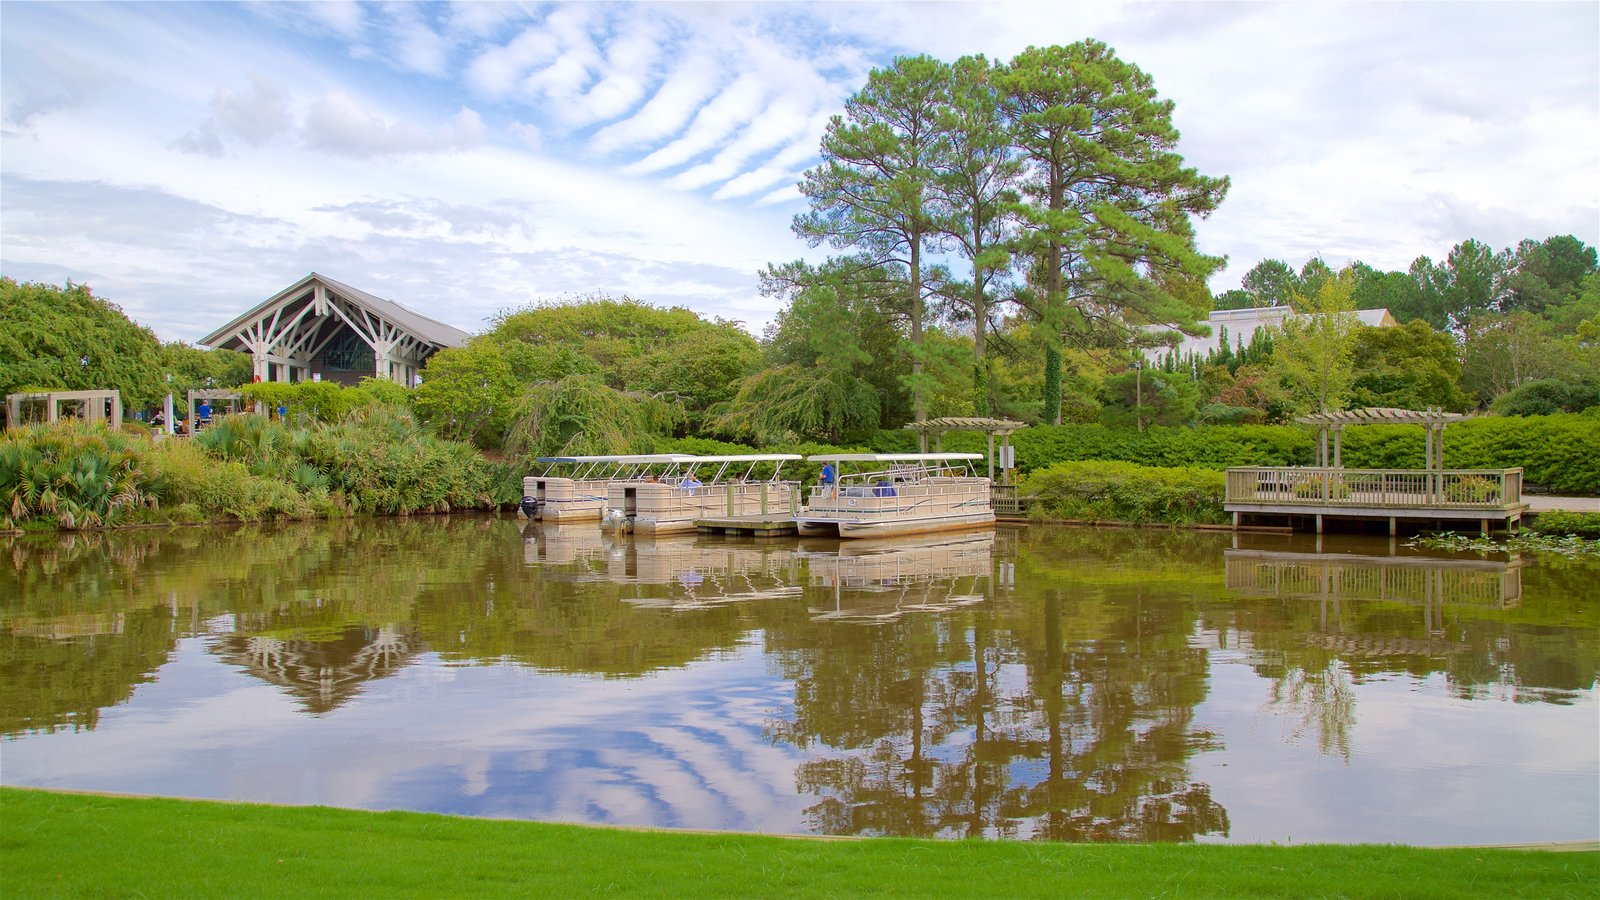 Norfolk Botanical Garden Pictures: View Photos & Images of Norfolk ...